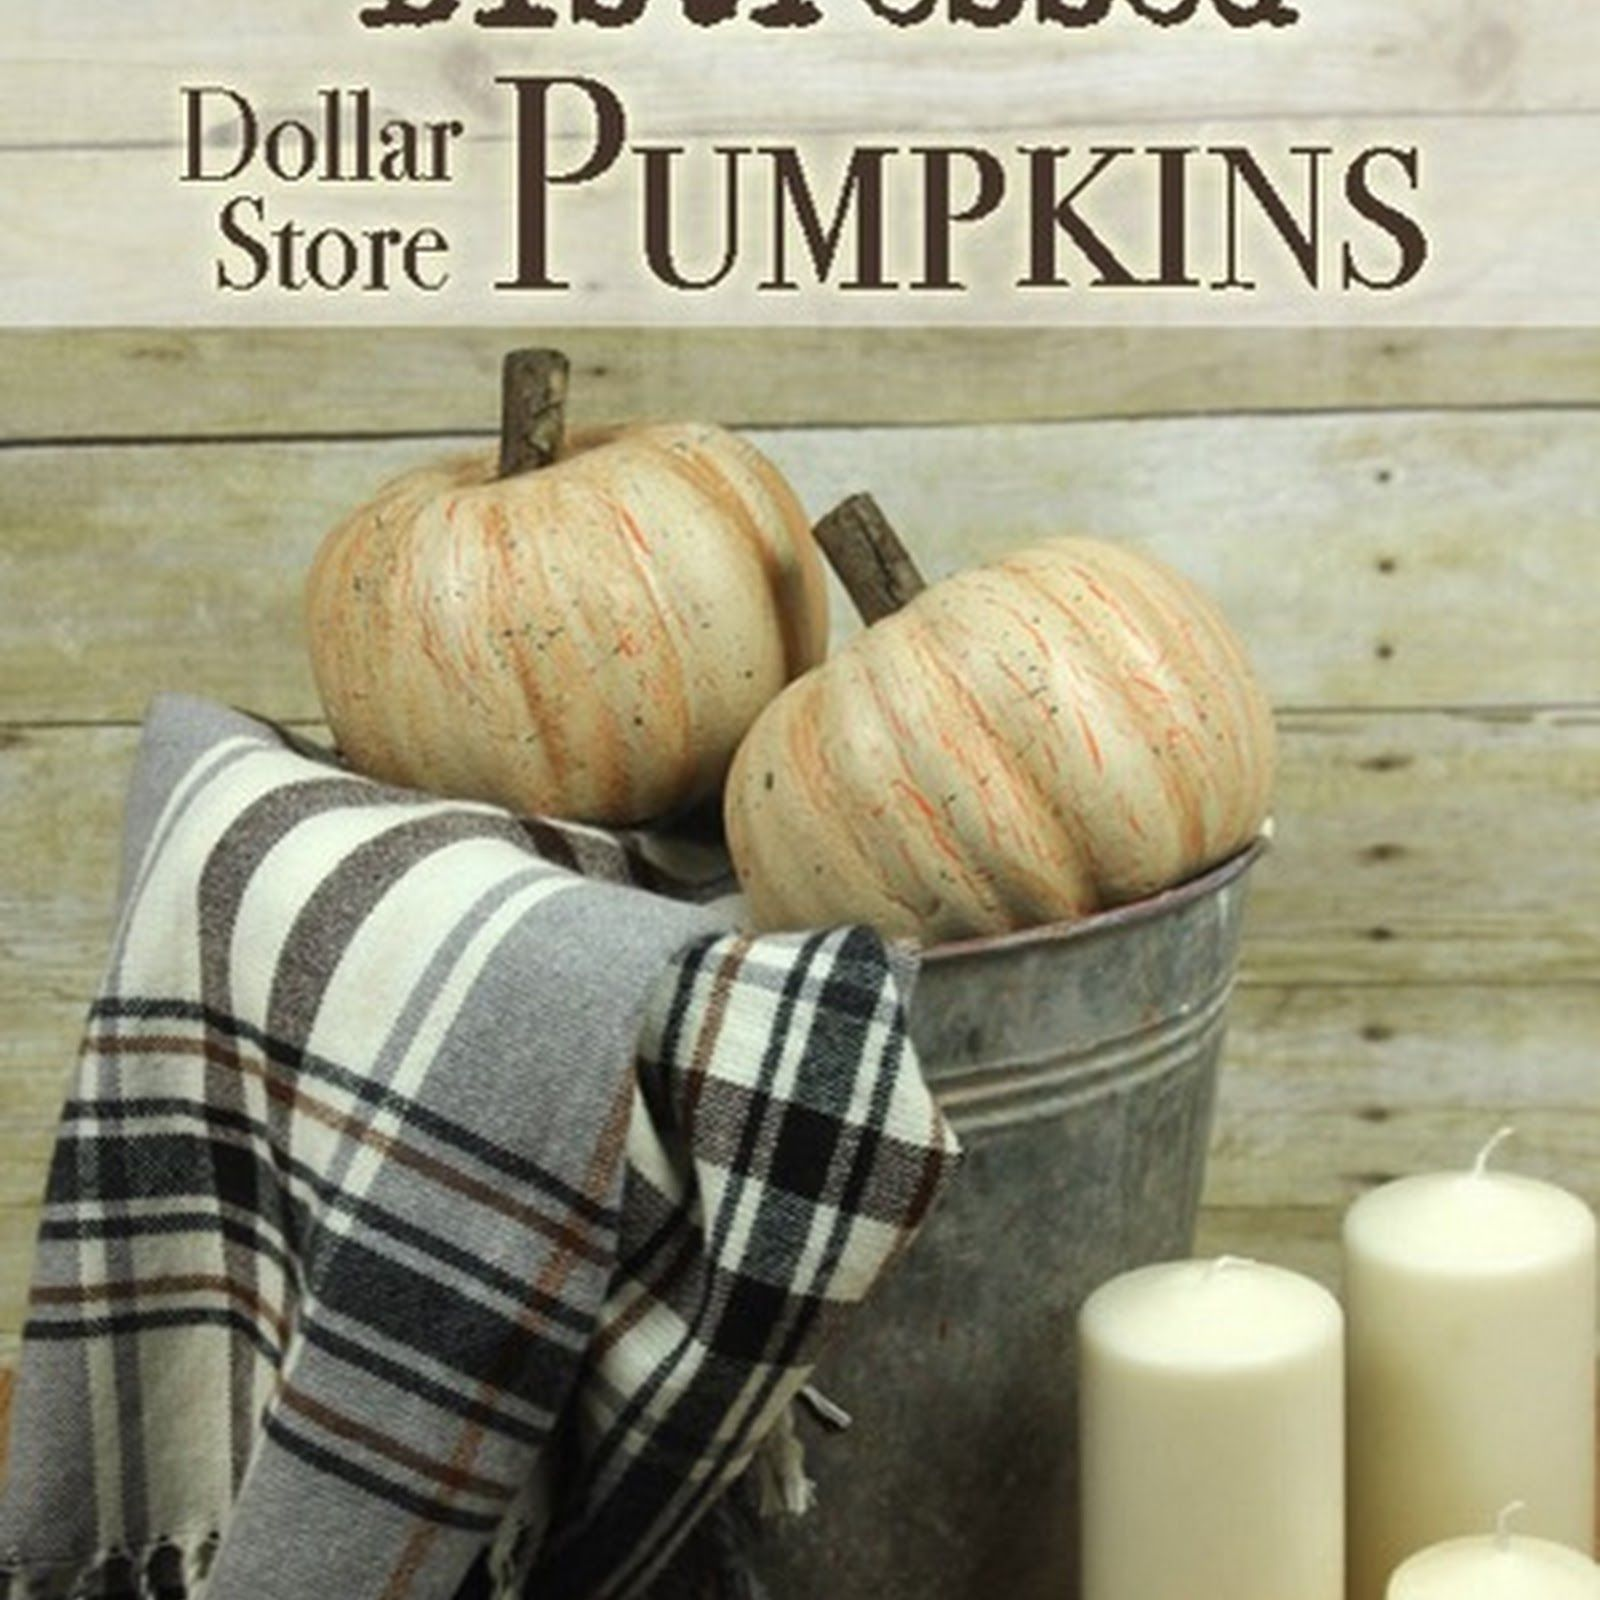 How to store pumpkins - Distressed Dollar Store Pumpkins With A Crackle Finish